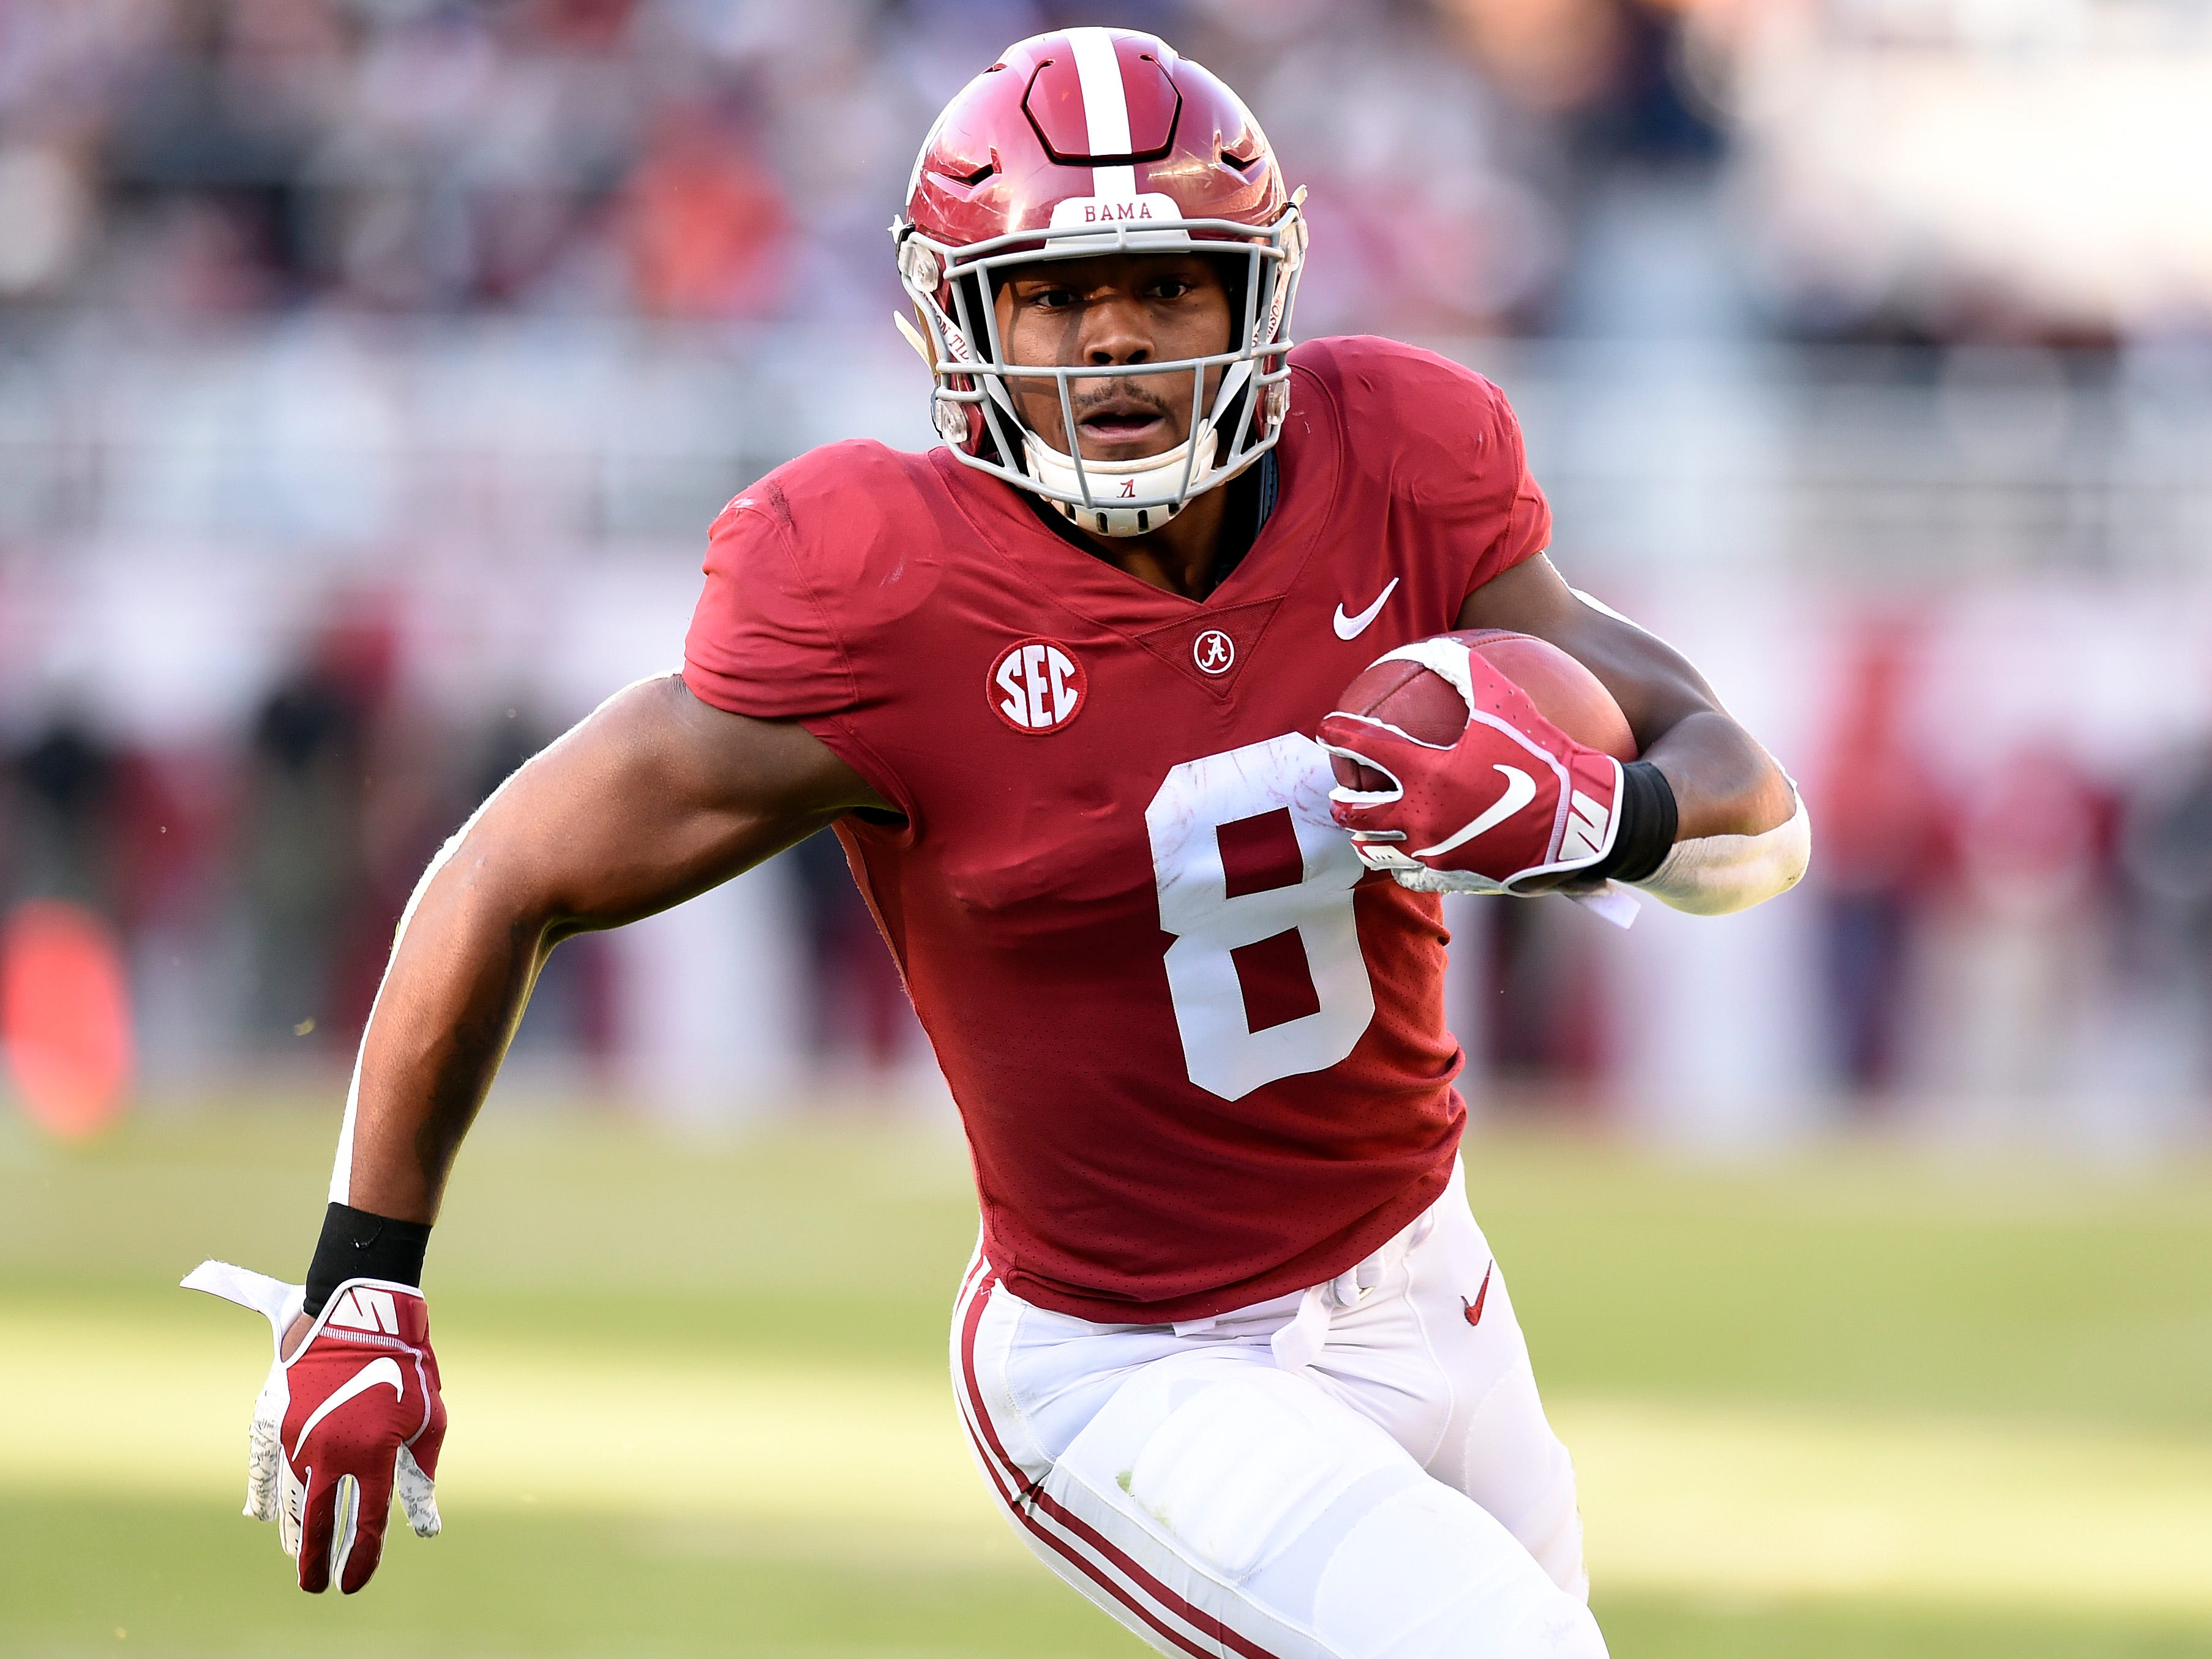 Colts coaches Frank Reich and Nick Sirianni beat Alabama RB Josh Jacobs in HORSE